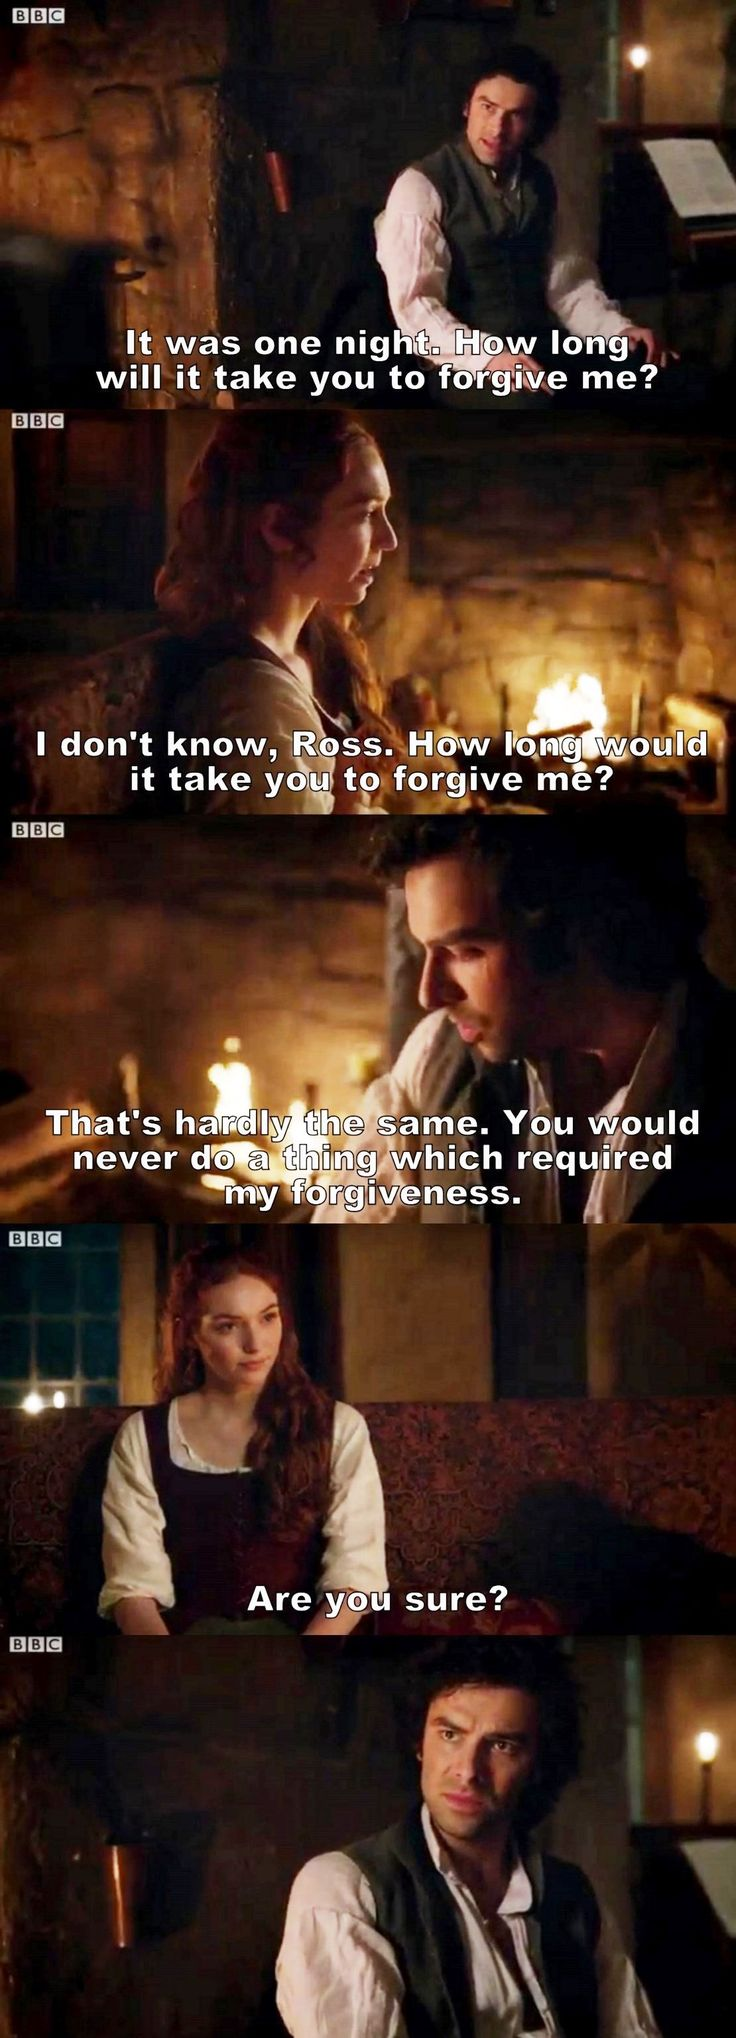 """""""I don't know, Ross. How long would it take you to forgive me?"""" - Demelza and Ross #Poldark"""